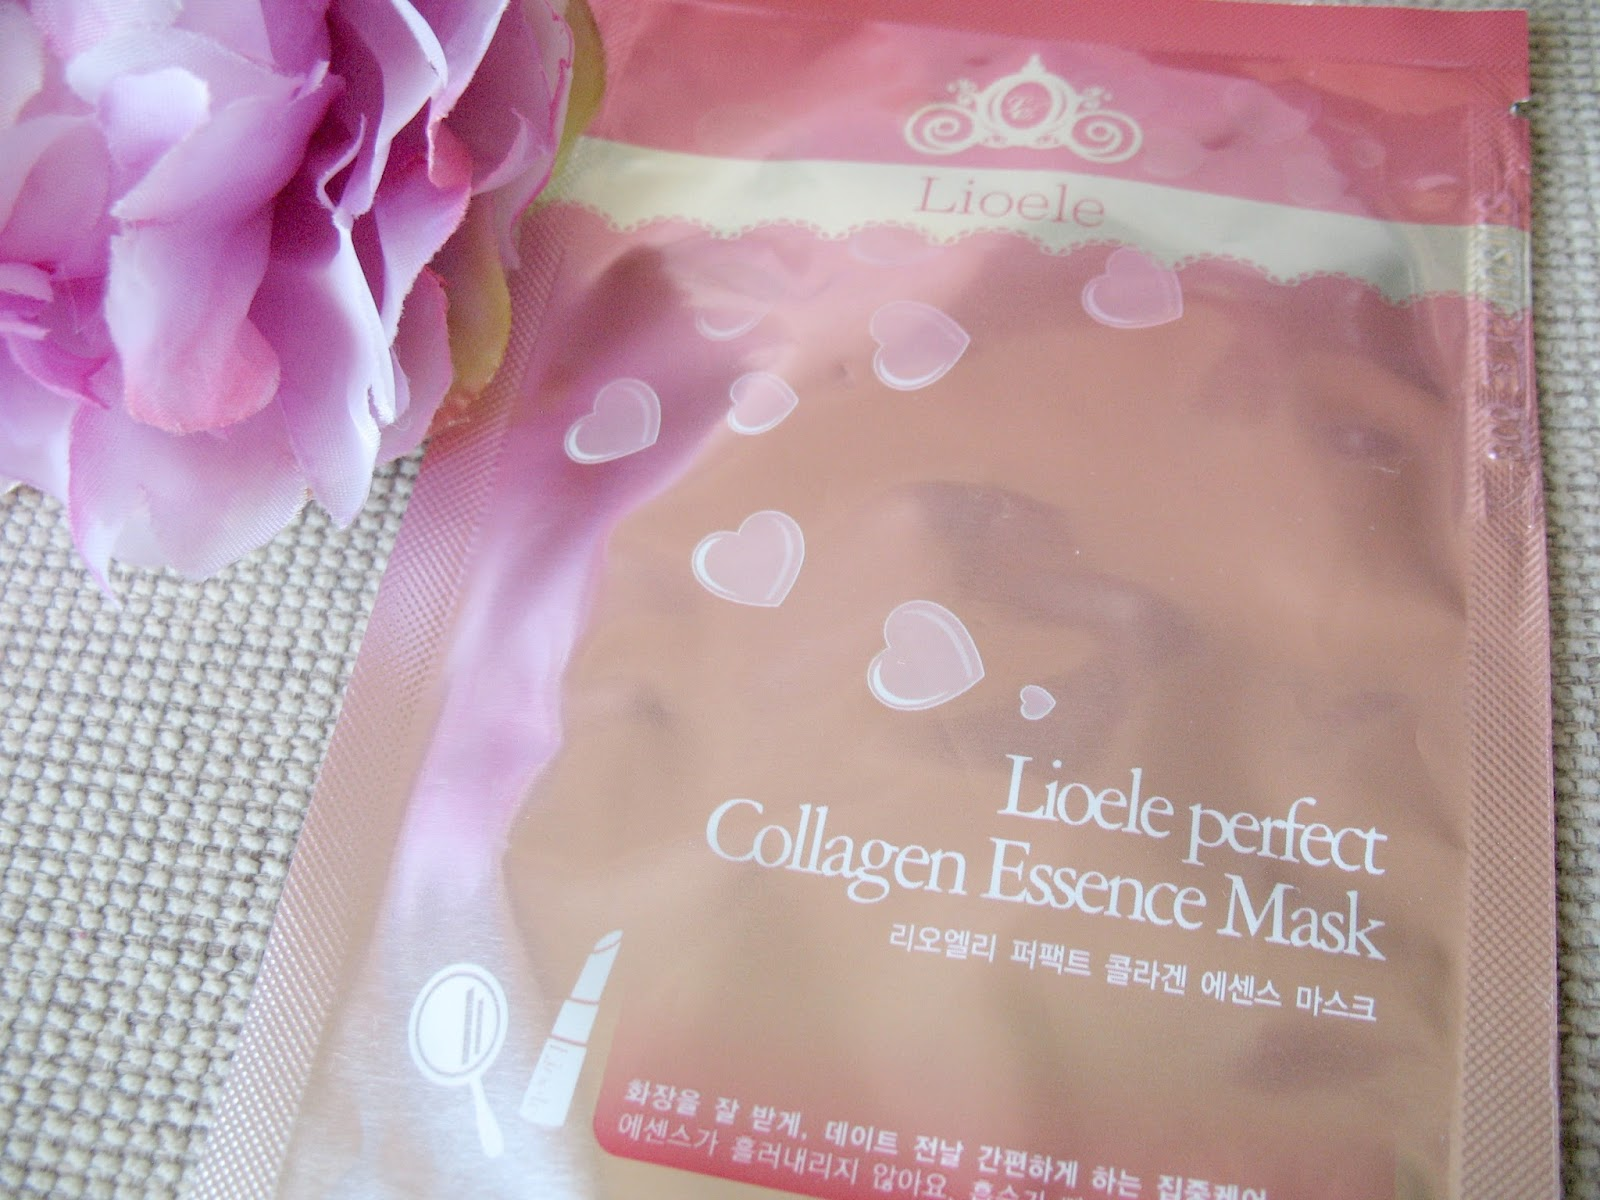 Lioele Perfect Collagen Essence Mask